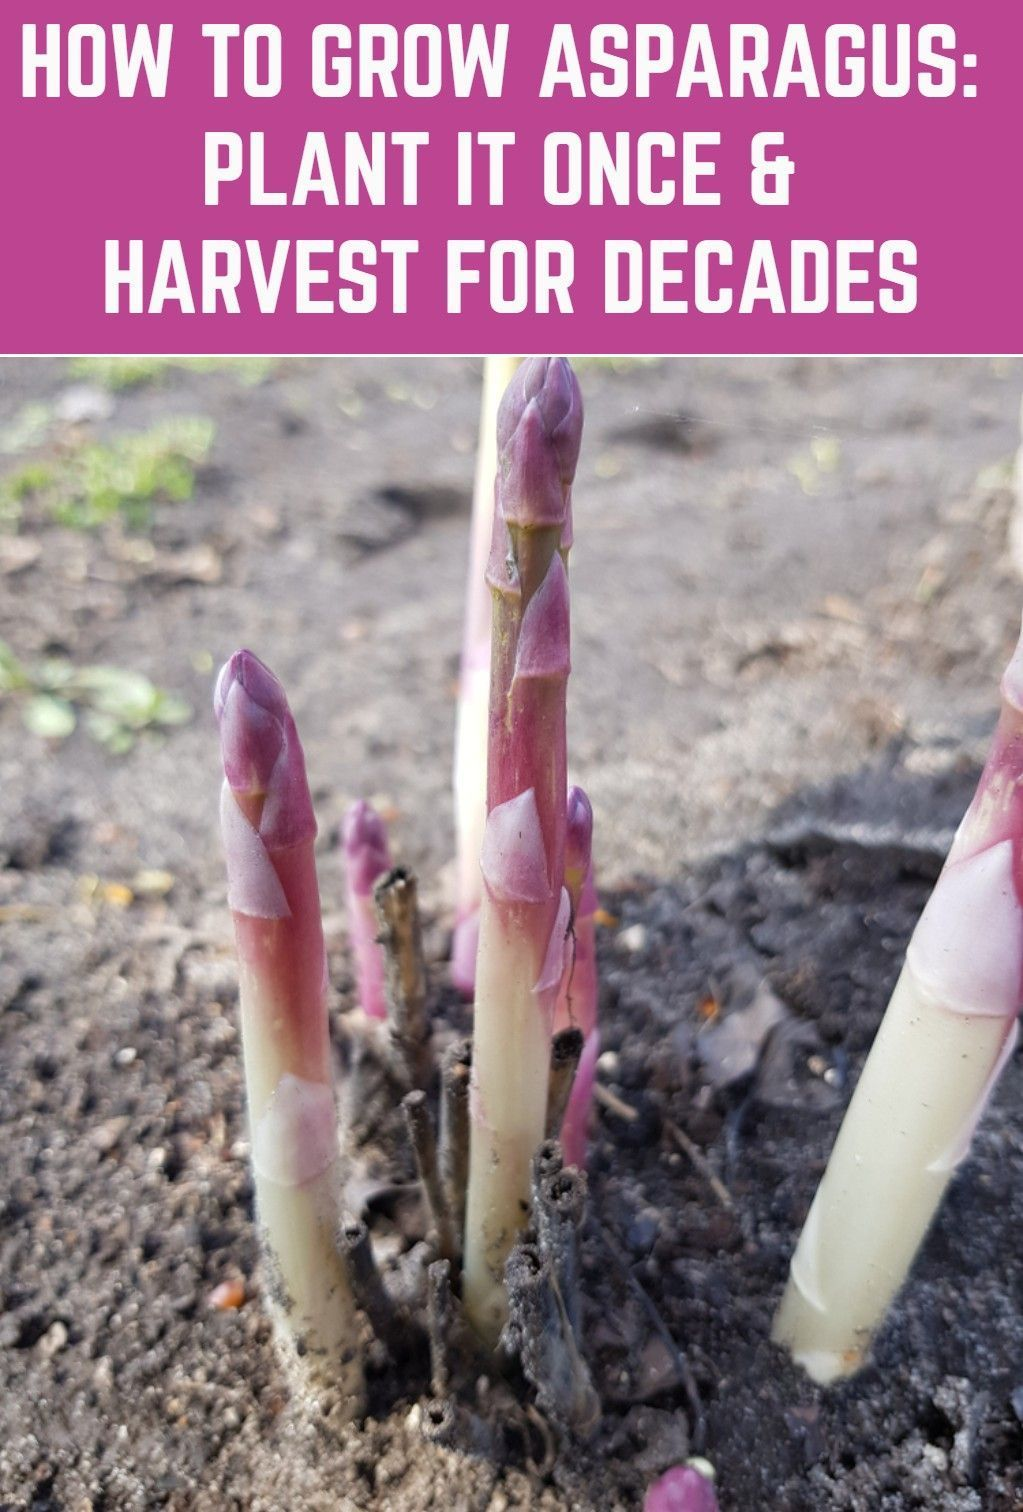 Plant Asparagus Once And It Will Come Back Every Year Like Clockwork For 30 Years Or More As In 2020 Growing Asparagus Planting Vegetables Backyard Vegetable Gardens